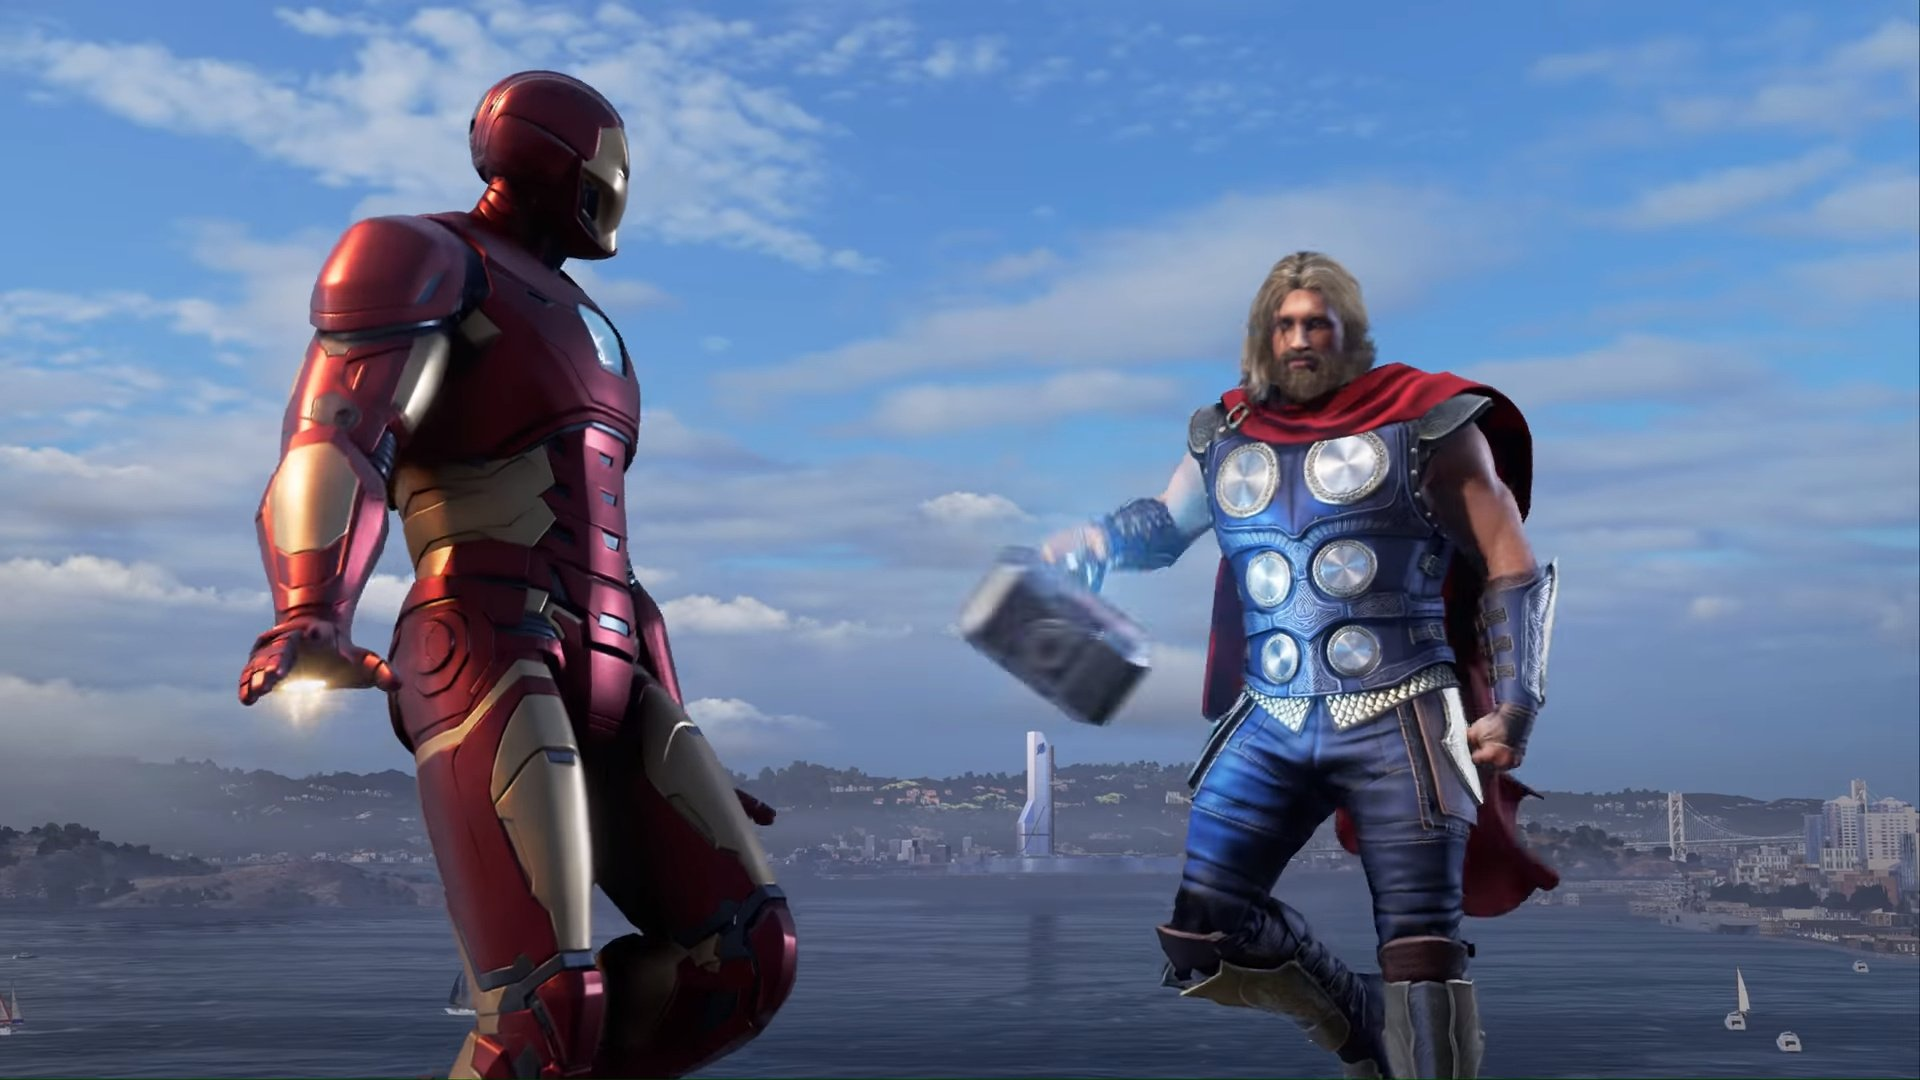 Marvel's Avengers lets players team up online with up to three other players.